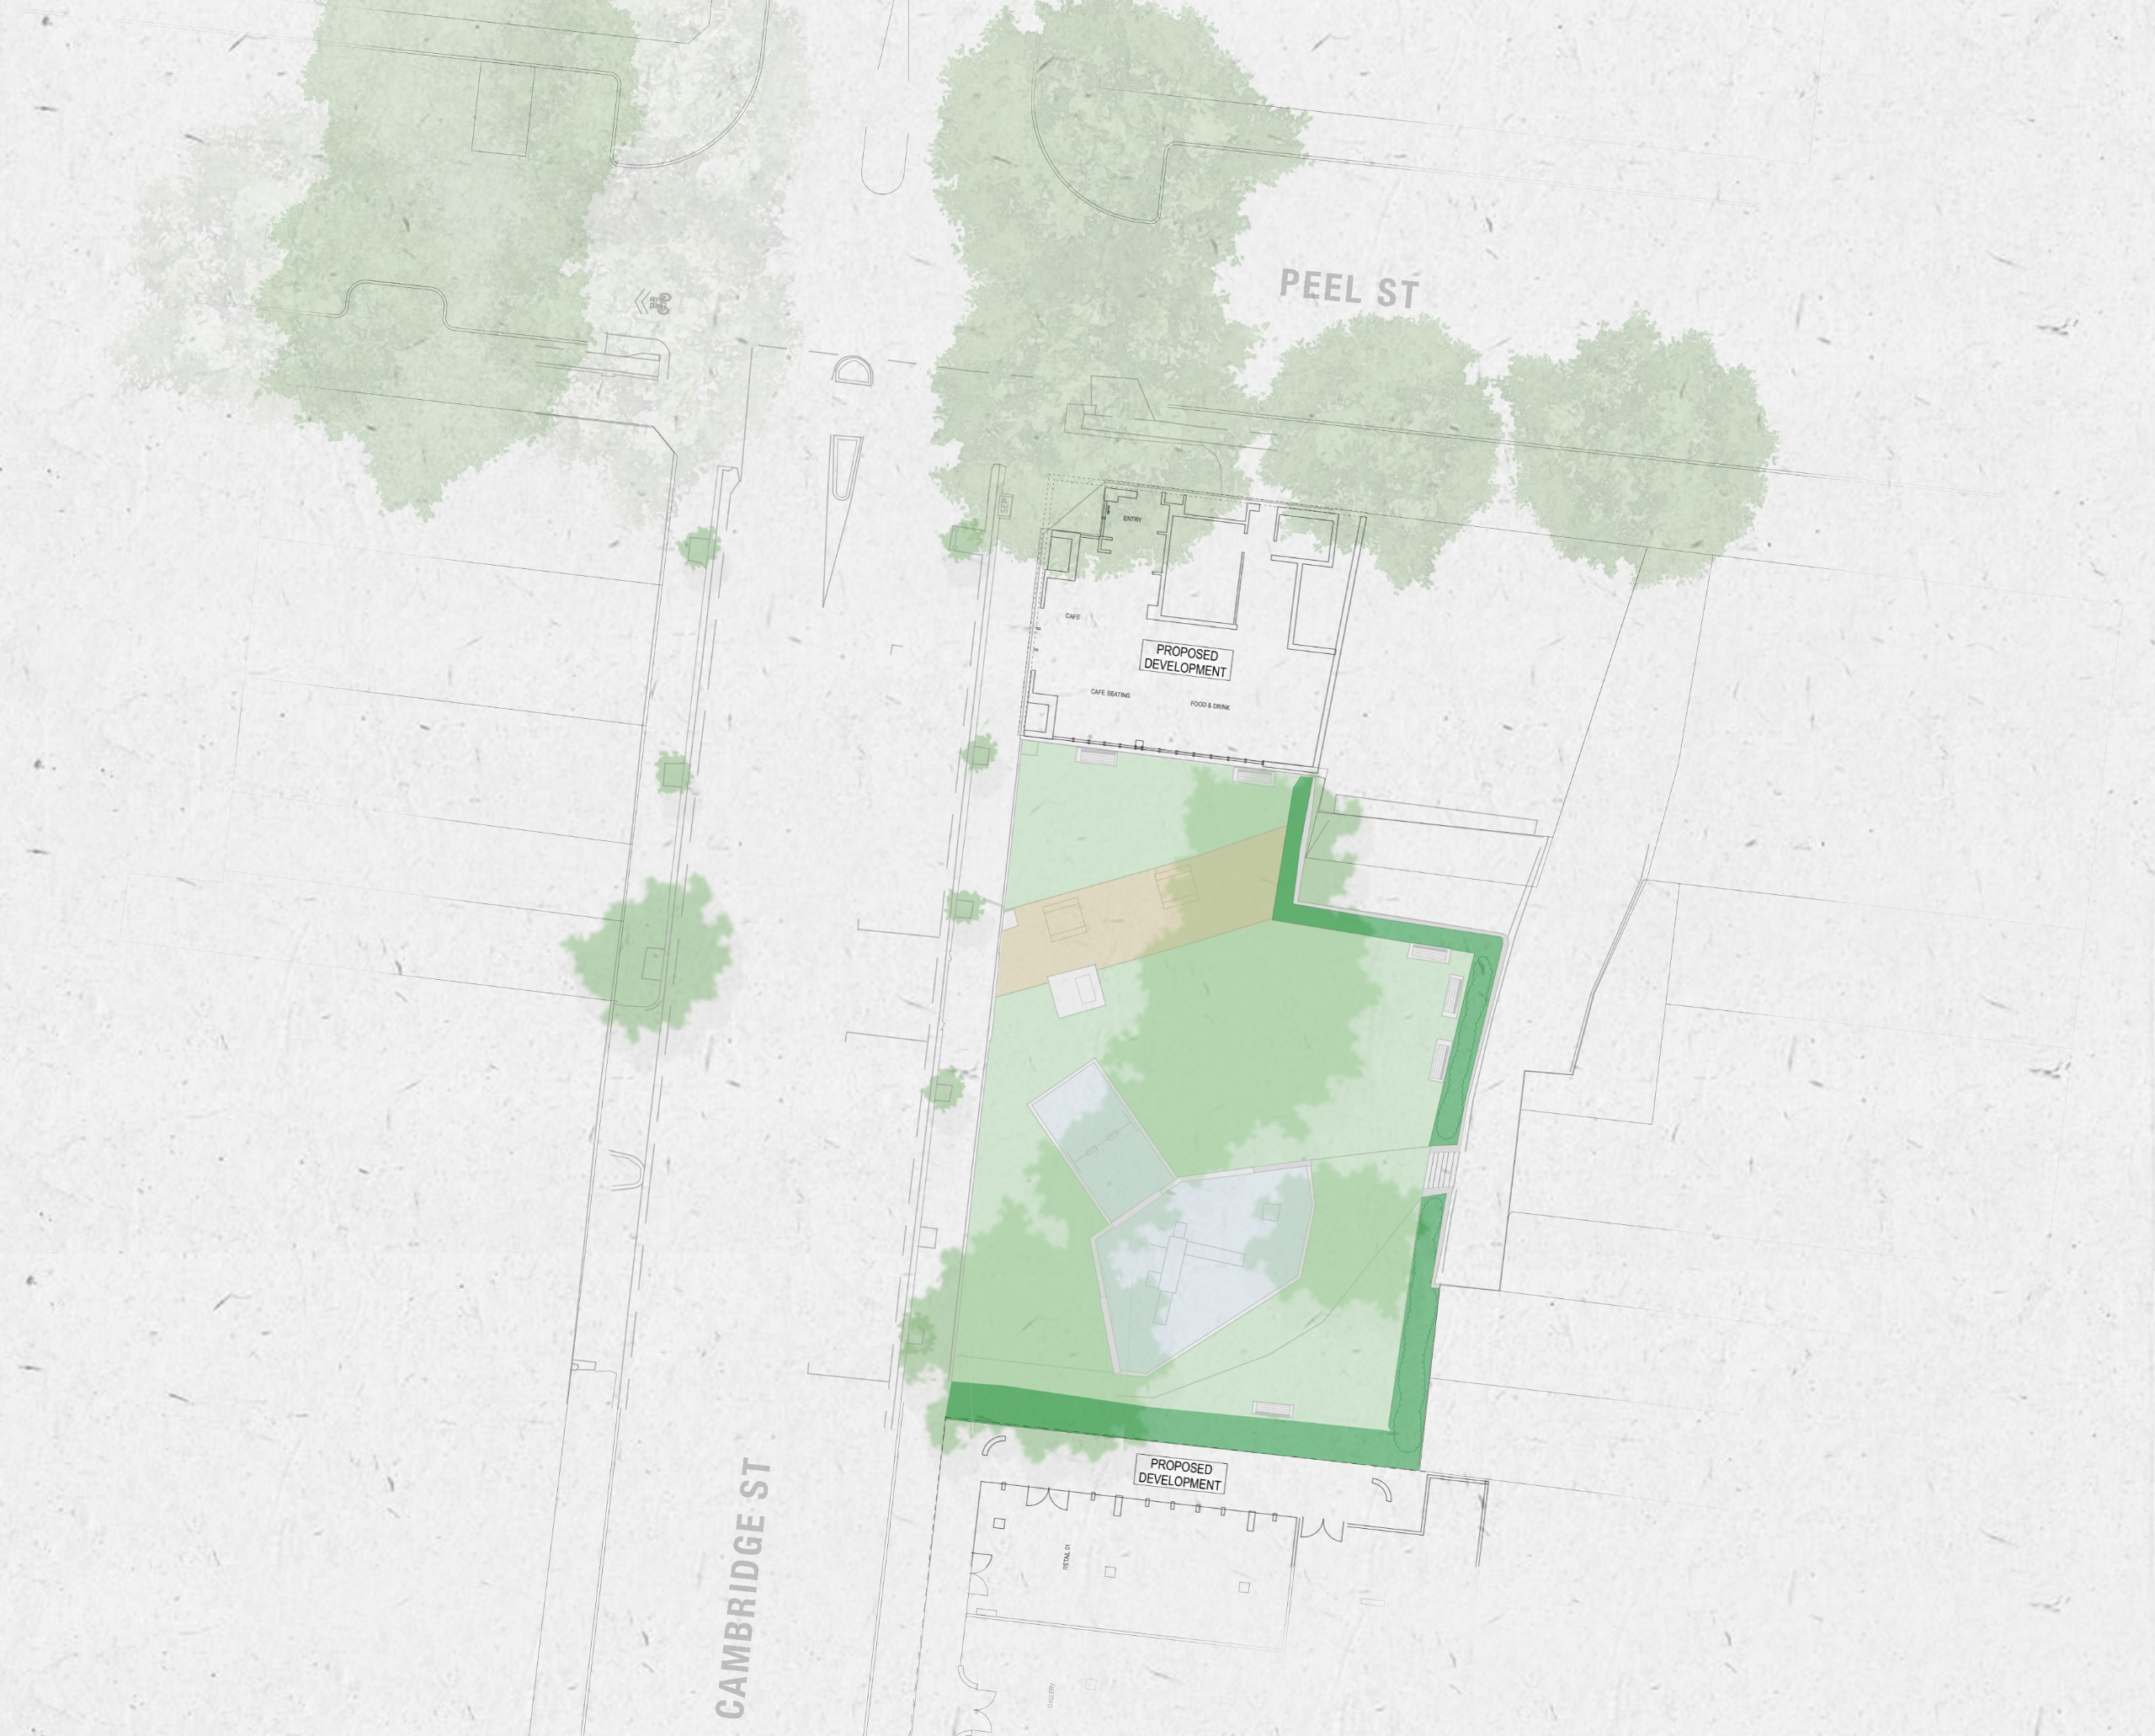 Before: Map of Cambridge Street Reserve and surrounding area as it currently looks